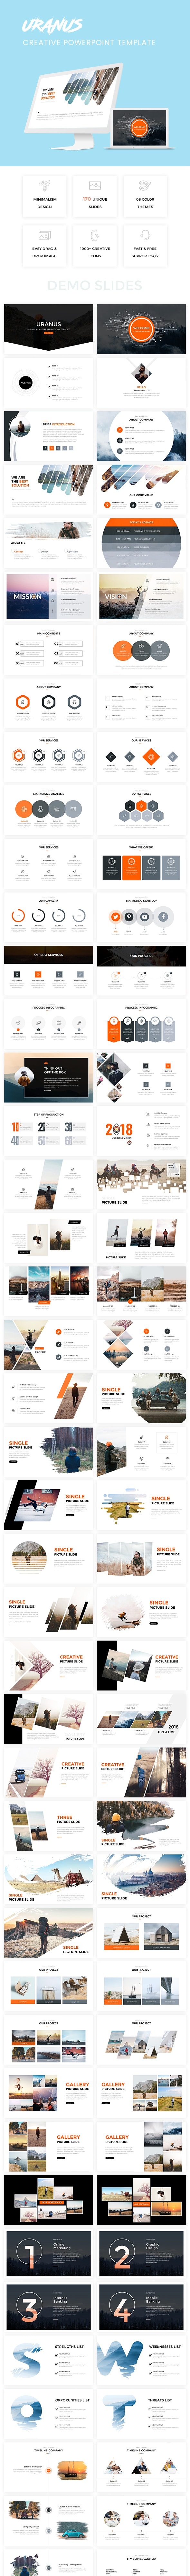 Bundle 2 in 1 Clean Powerpoint Template - Business PowerPoint Templates